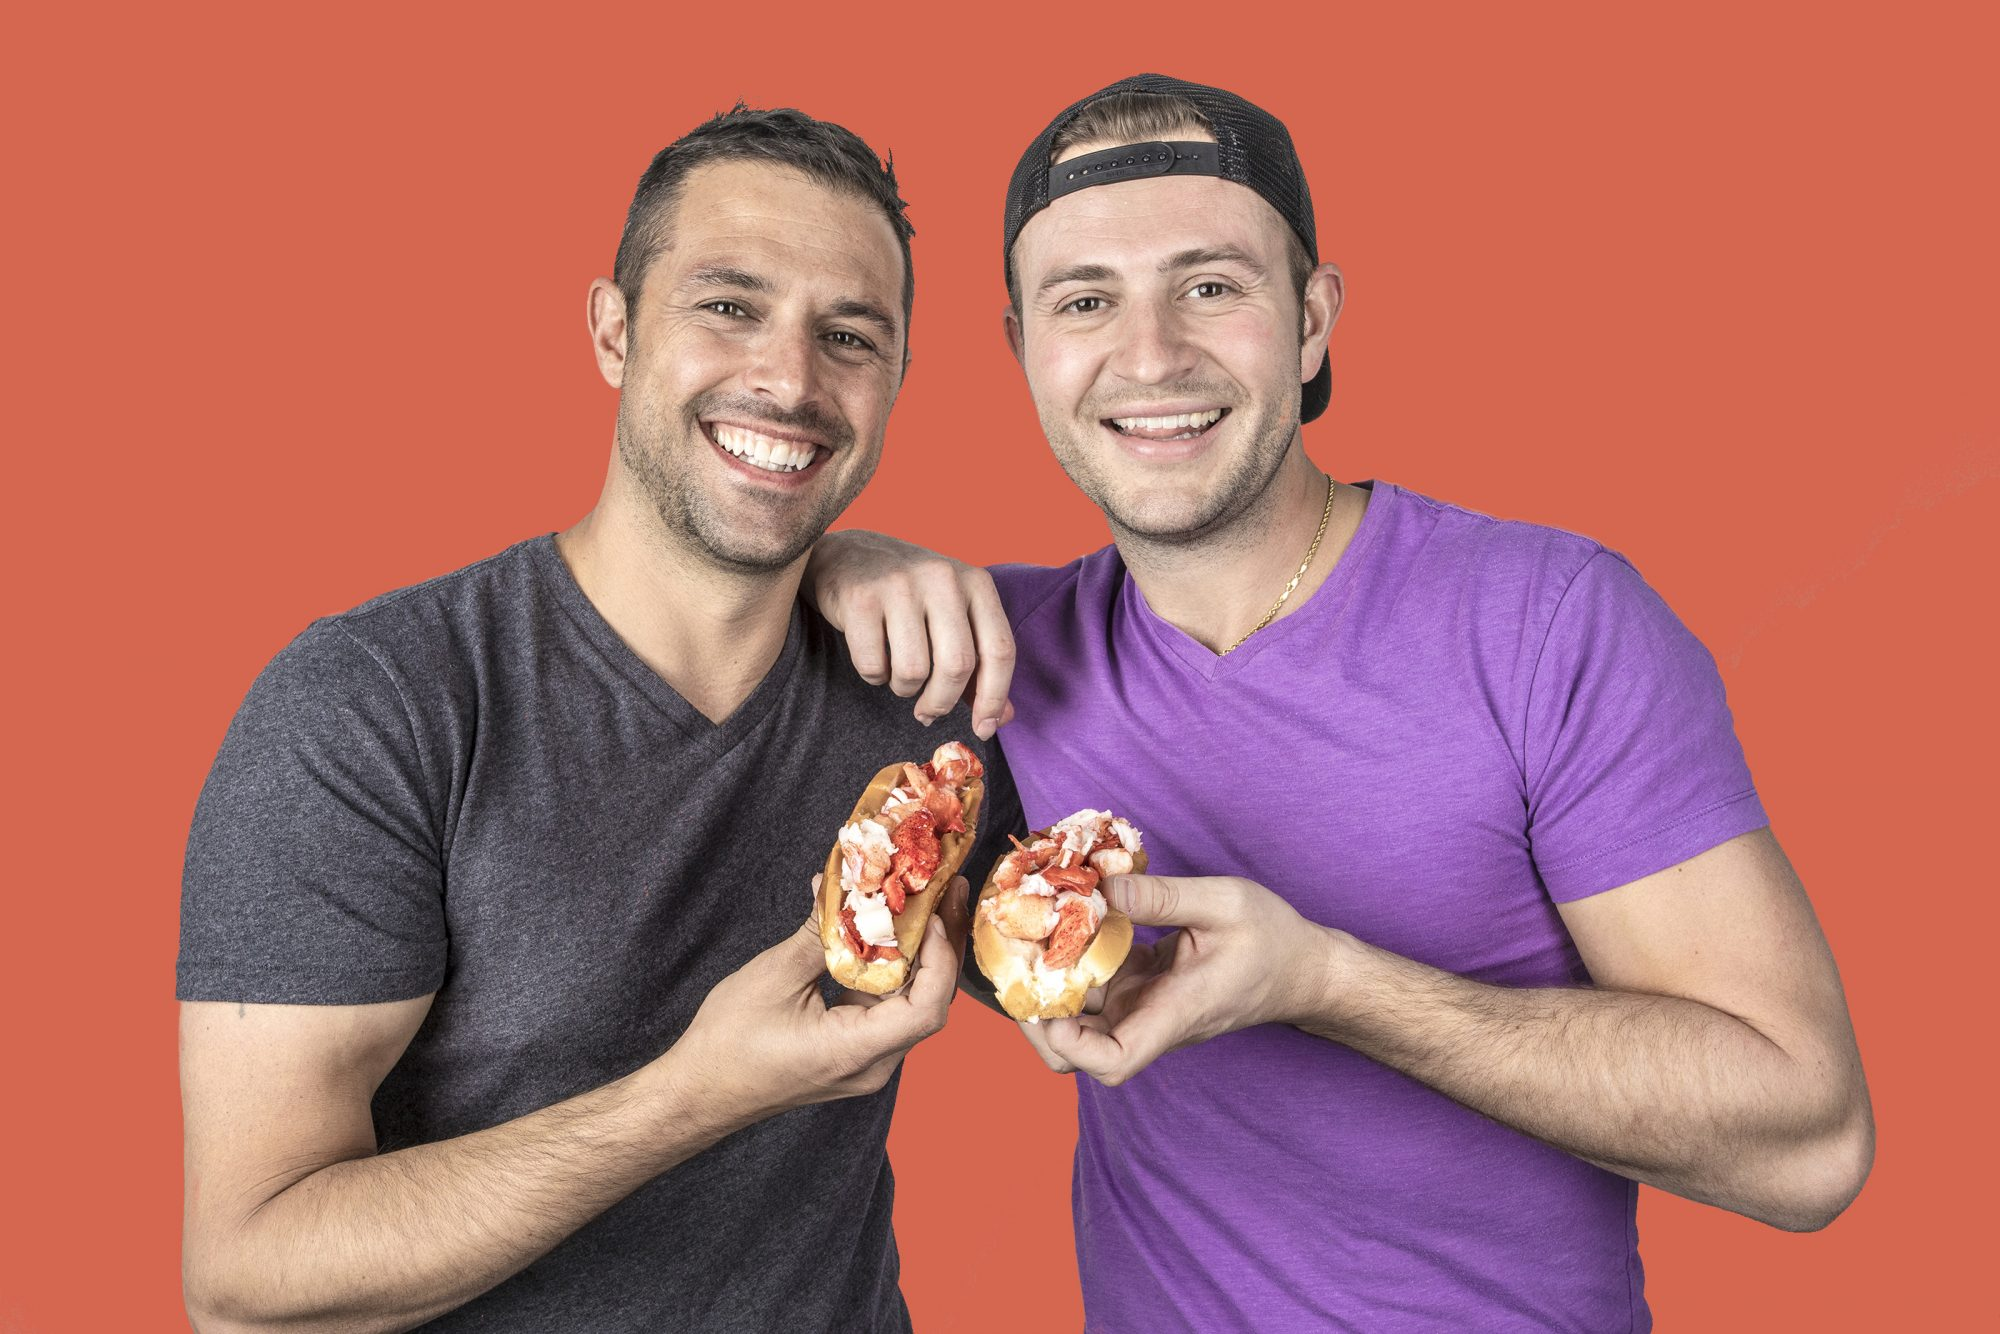 These Two Cousins Got Drunk and Decided to Start a Lobster Truck. Now They're Running a $20 Million Business